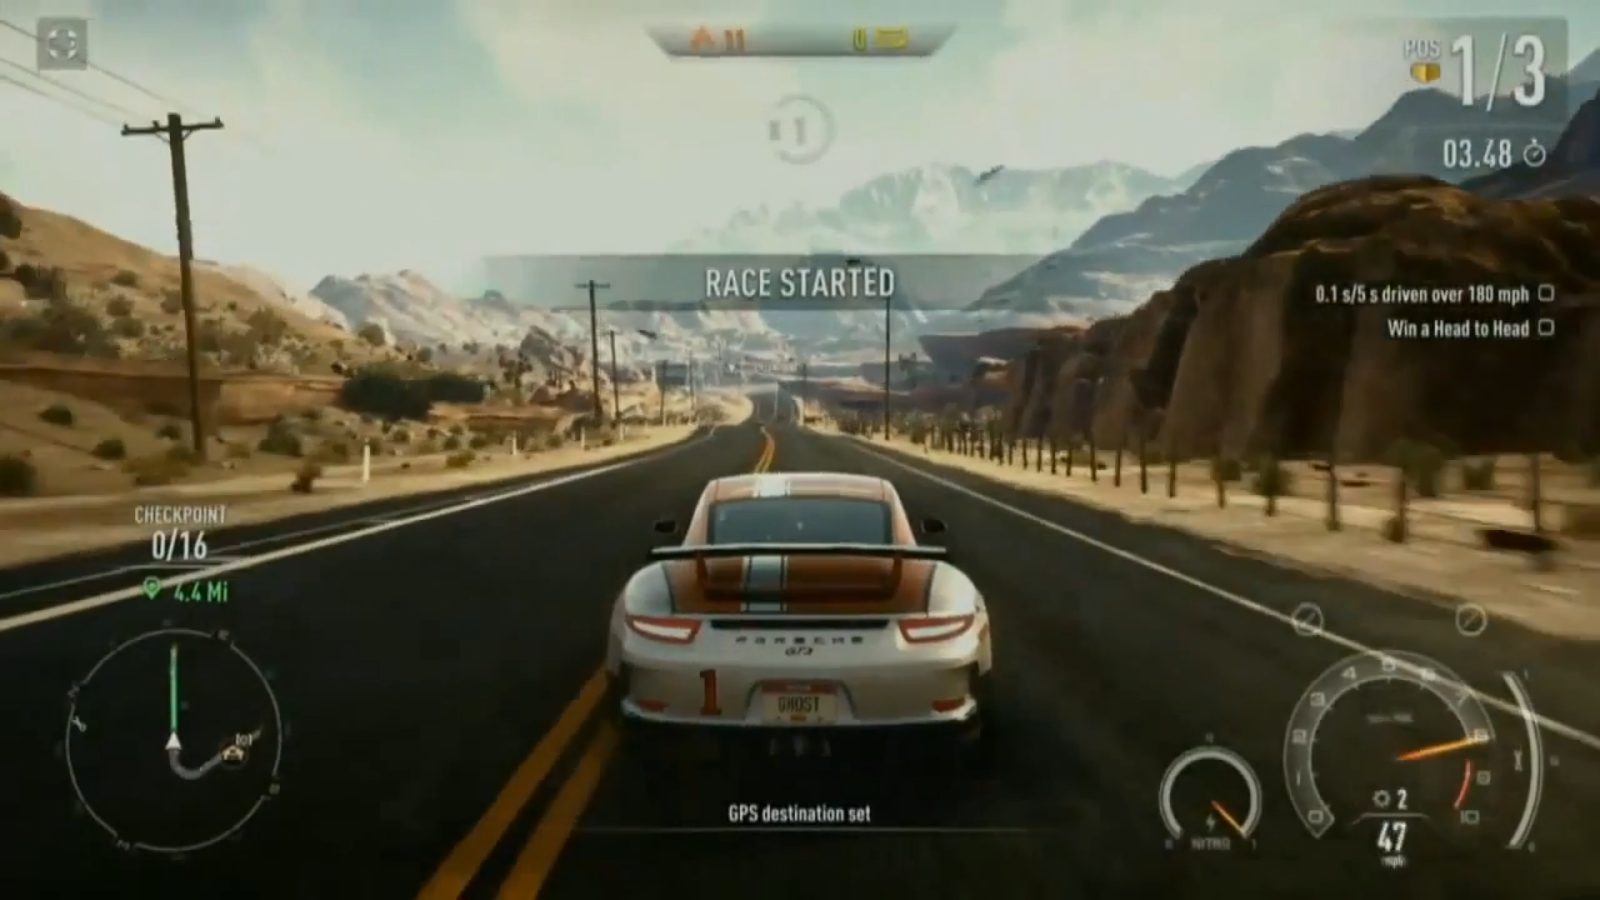 Need for speed rivals crack download 32 bit